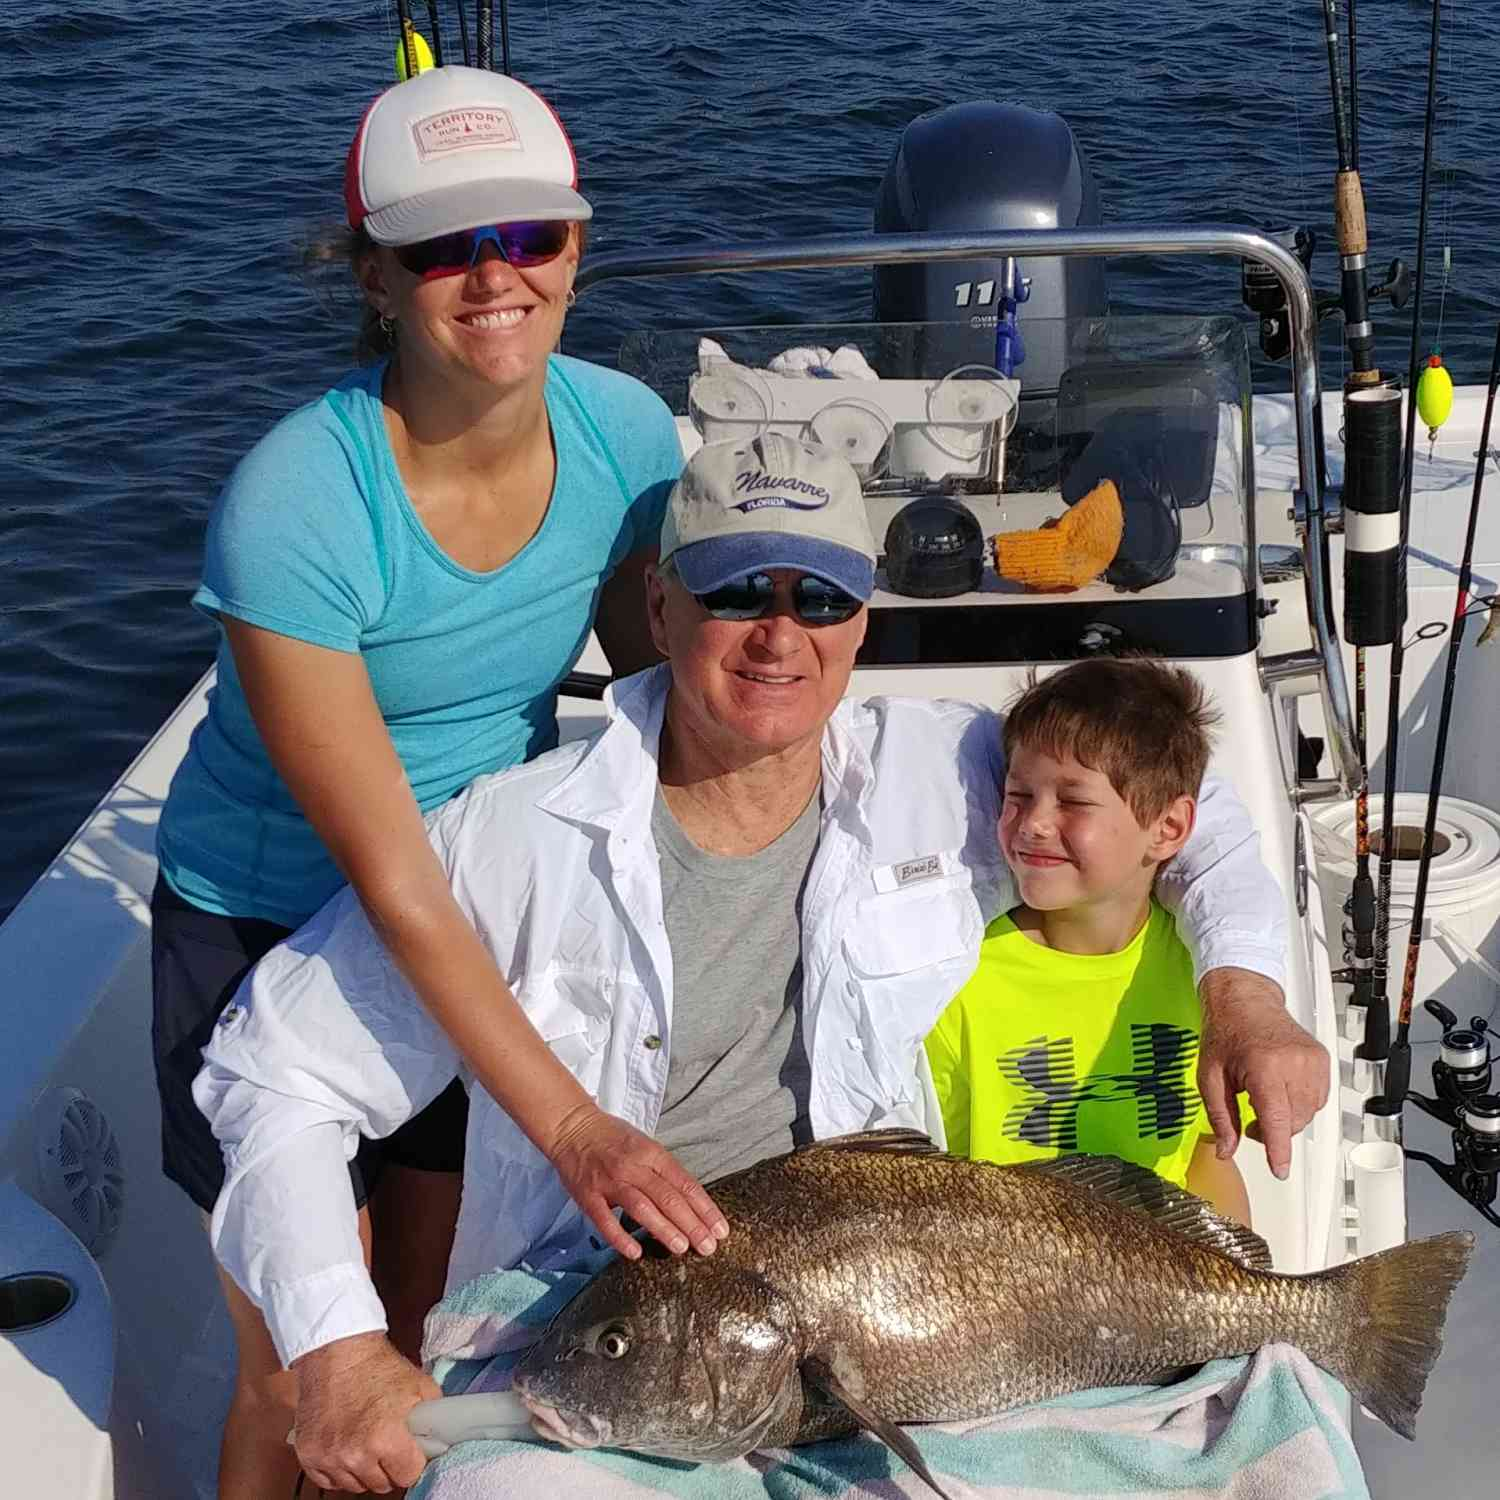 Title: Families that fish together stay together - On board their Sportsman Masters 207 Bay Boat - Location: Navarre Florida. Participating in the Photo Contest #SportsmanMay2018